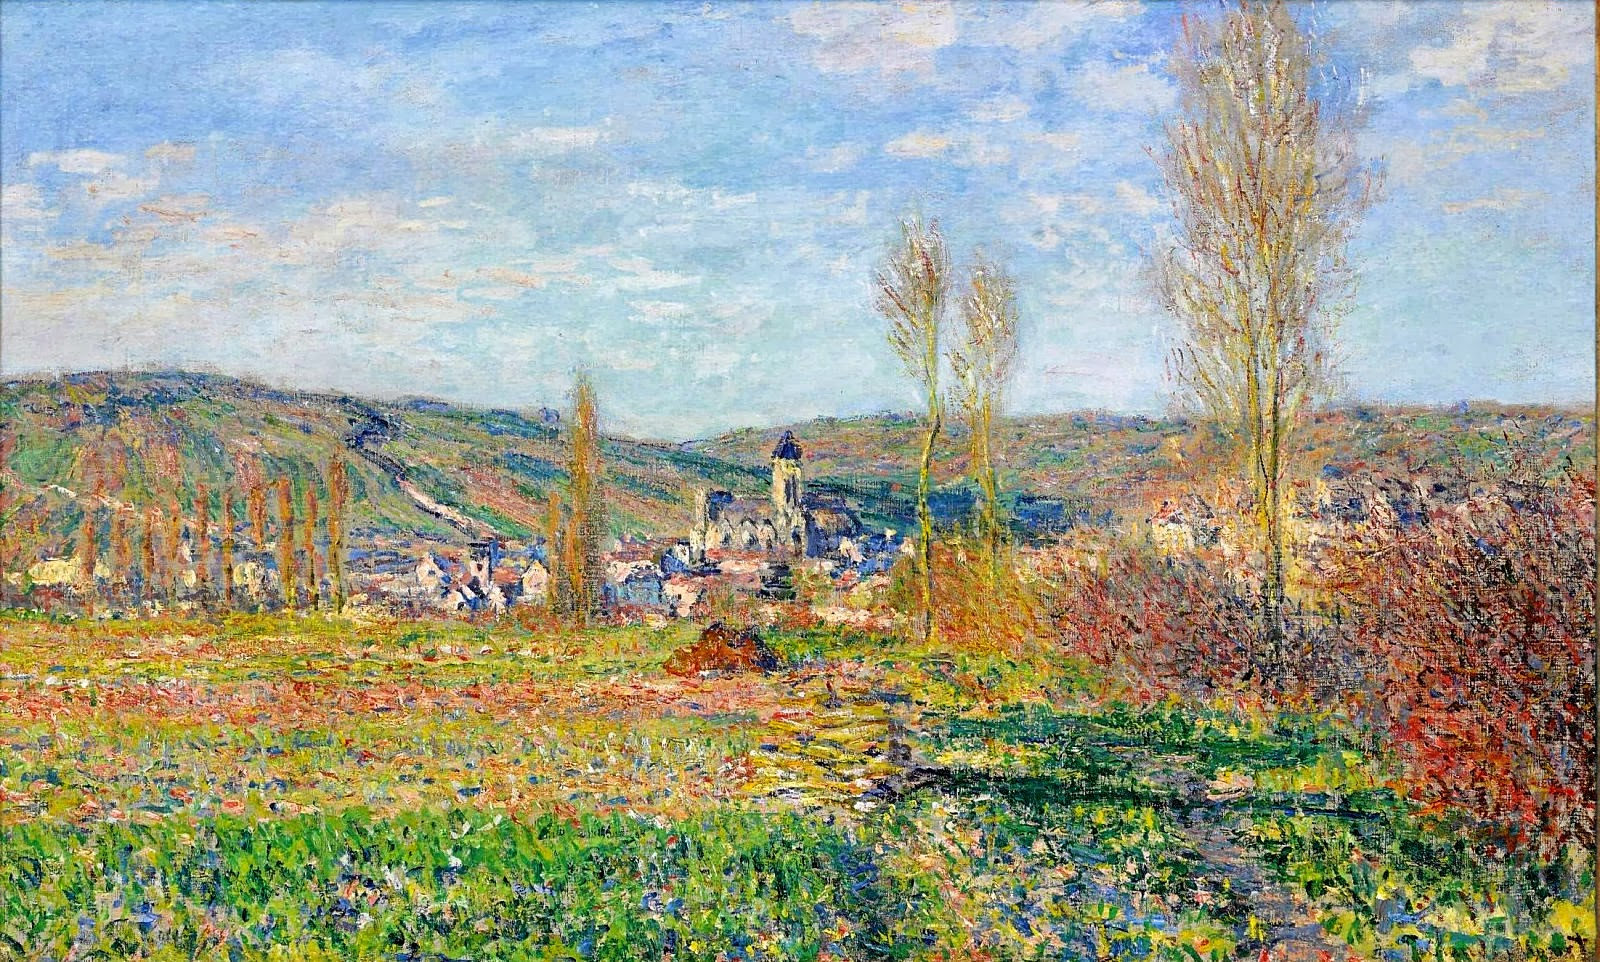 art artists claude monet part  claude monet 1880 veacutetheuil under the sun oil on canvas